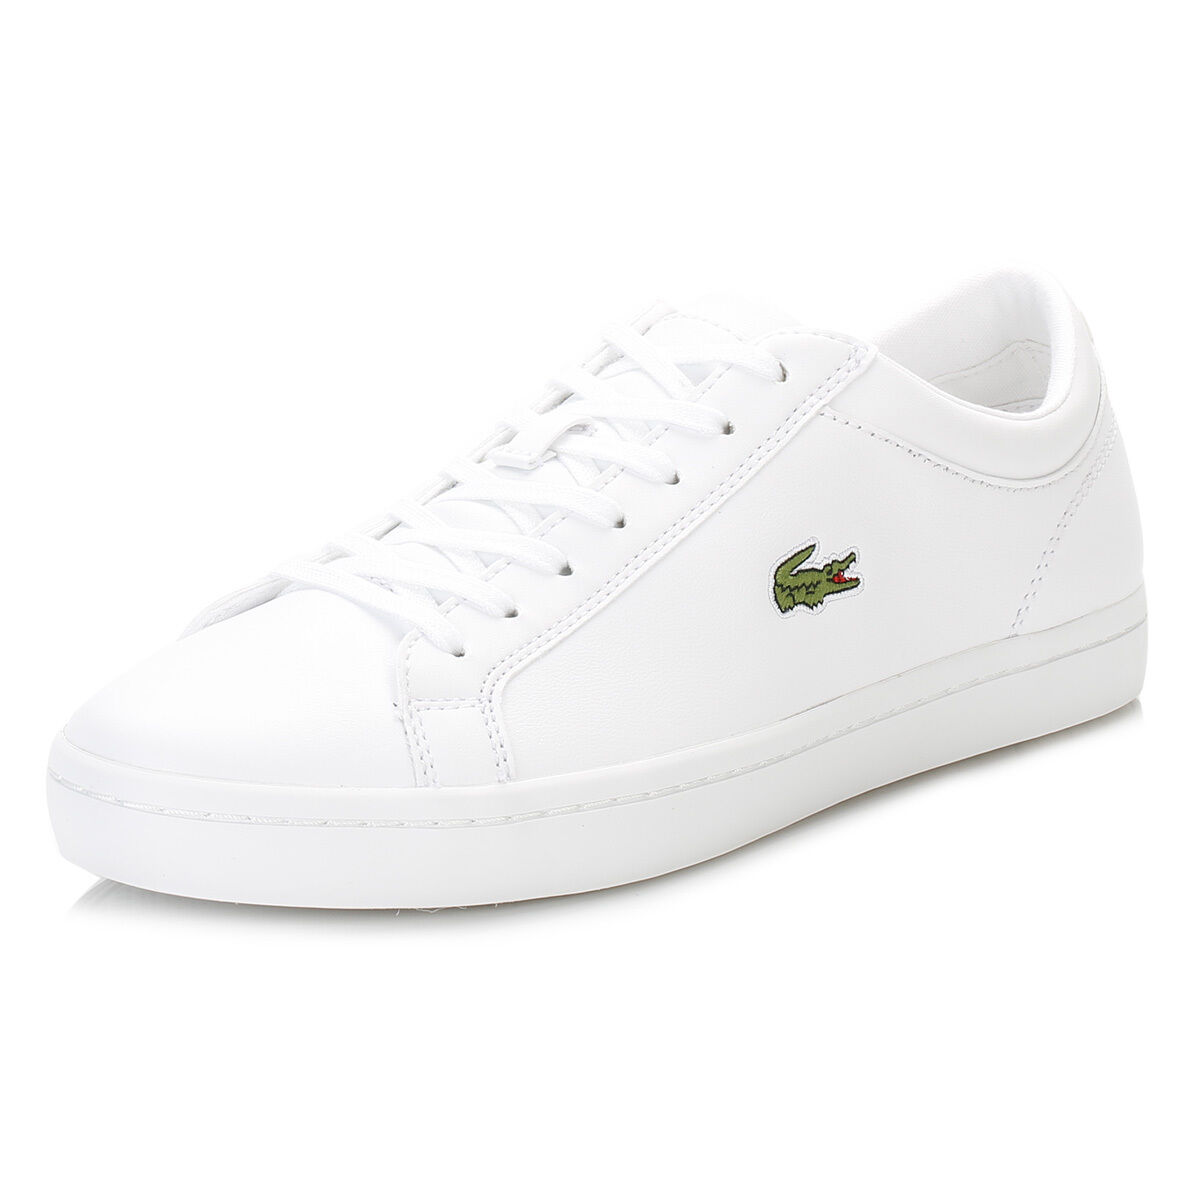 Lacoste Womens White Trainers, Straightset BL1 SPW, Lace Up, Casual Sneaker shoes